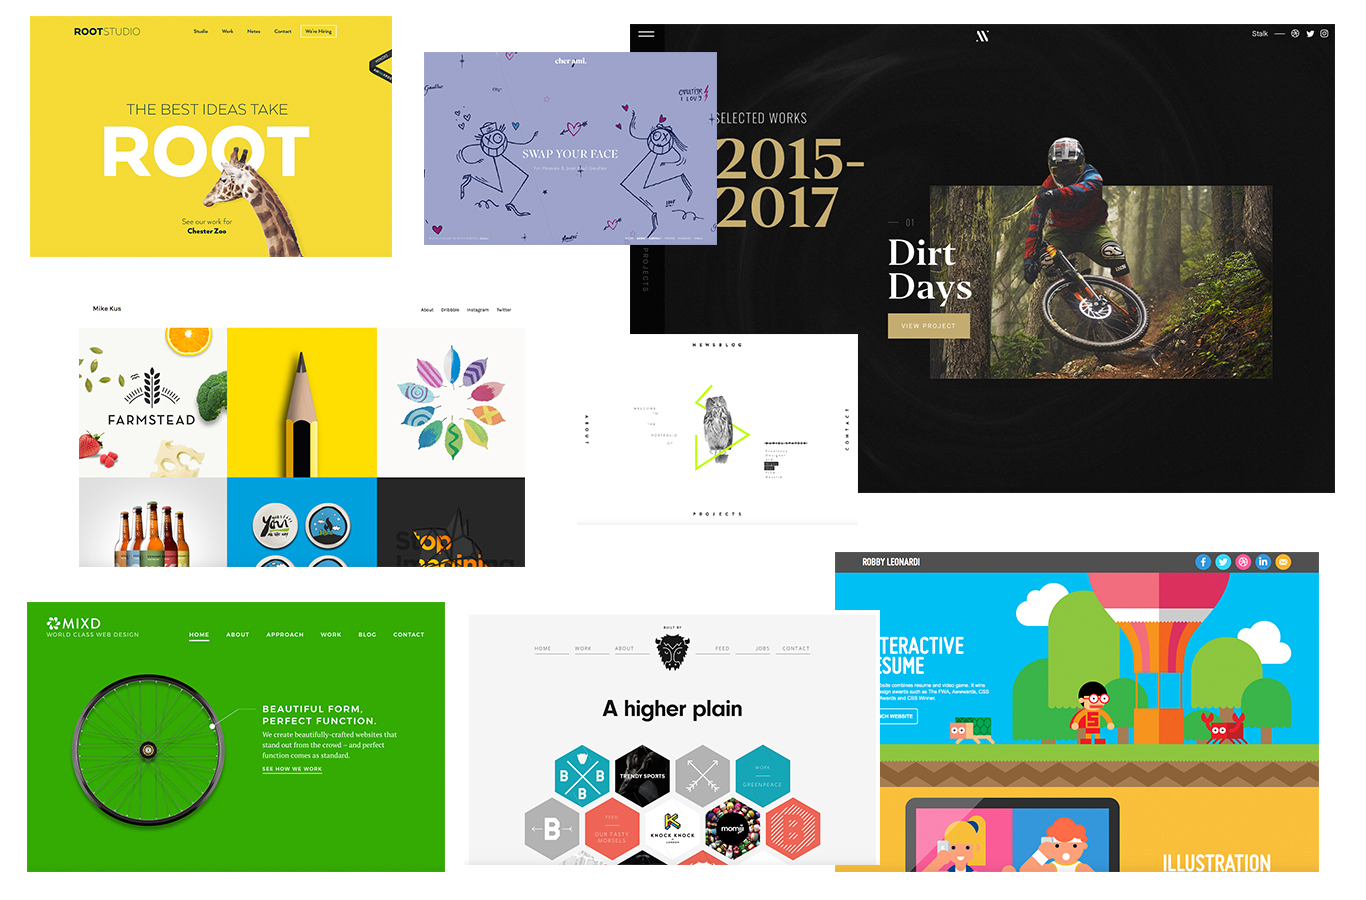 20 graphic design portfolio sites to inspire your own work